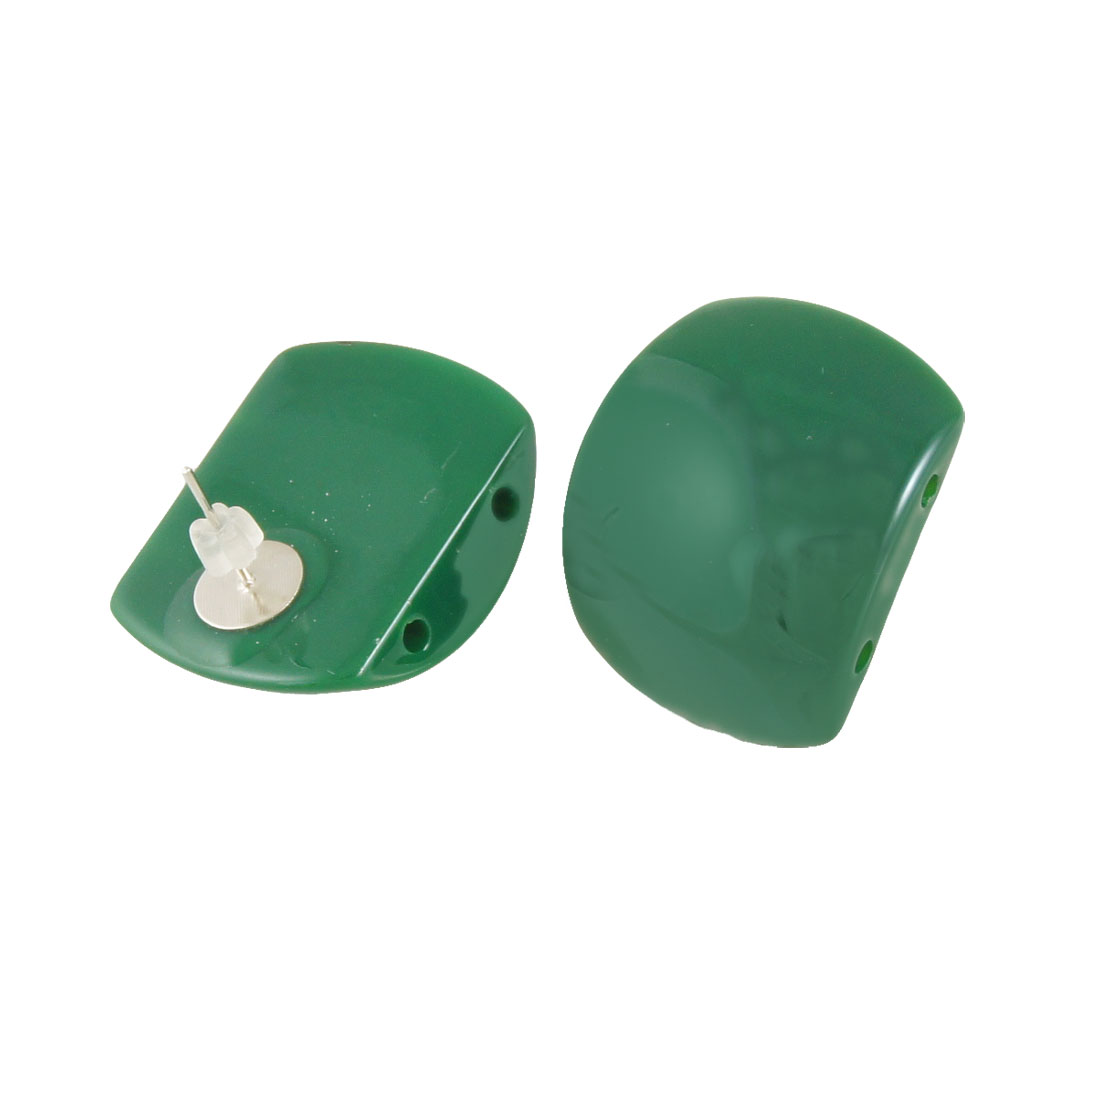 2 Pcs Plastic Cap Green Square Detailing Earbob Studs Earrings for Women